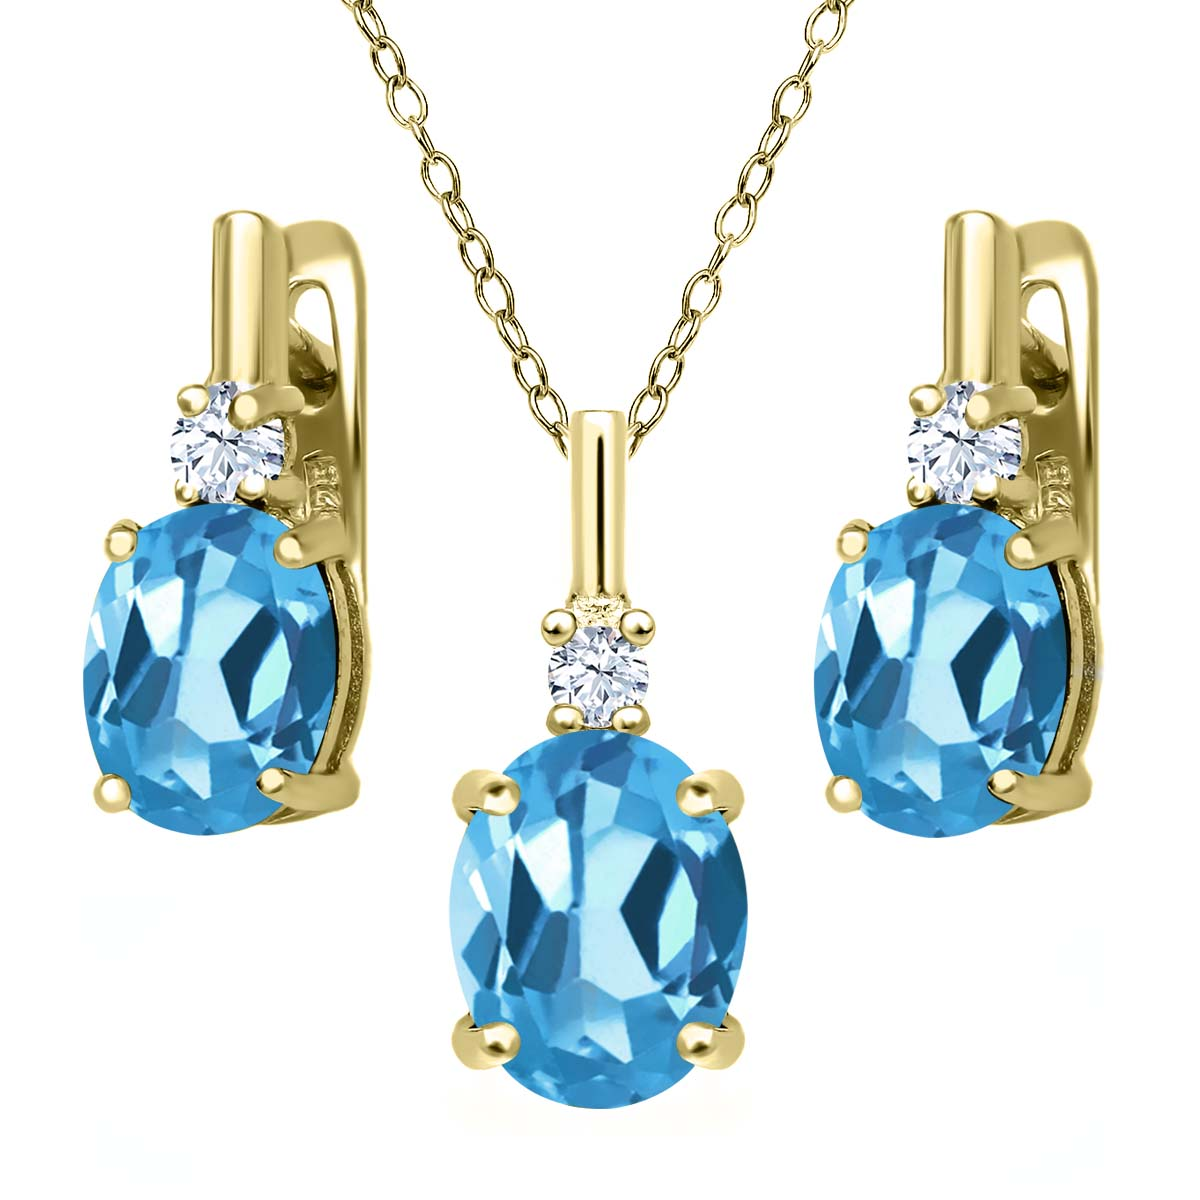 6.65 Ct Swiss Blue Topaz 18K Yellow Gold Plated Silver Pendant Earrings Set by